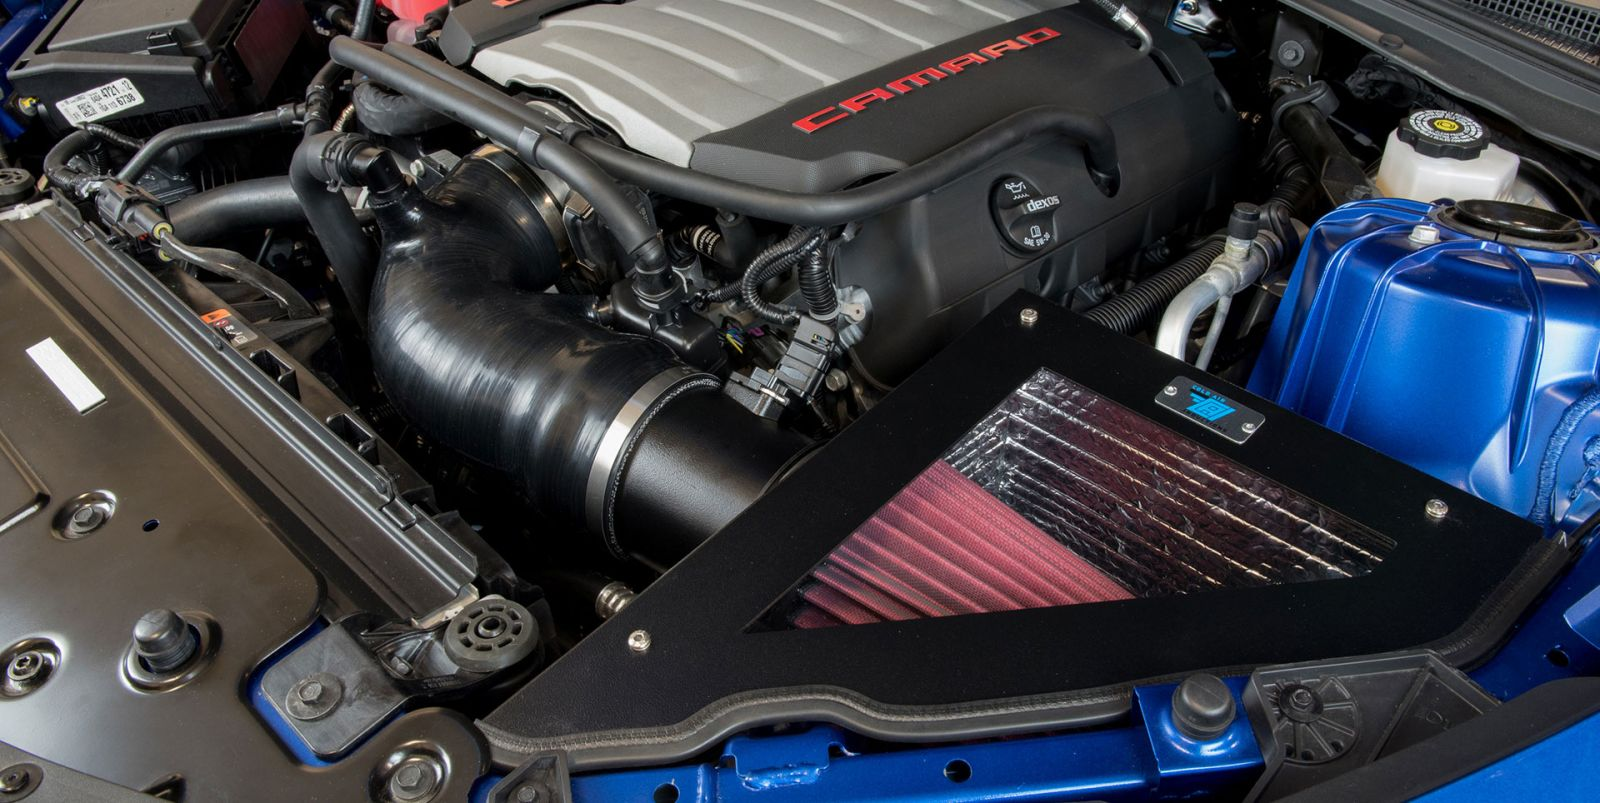 2016 Camaro 6.2 Cold Air Inductions Inc. Cold Air Intake System